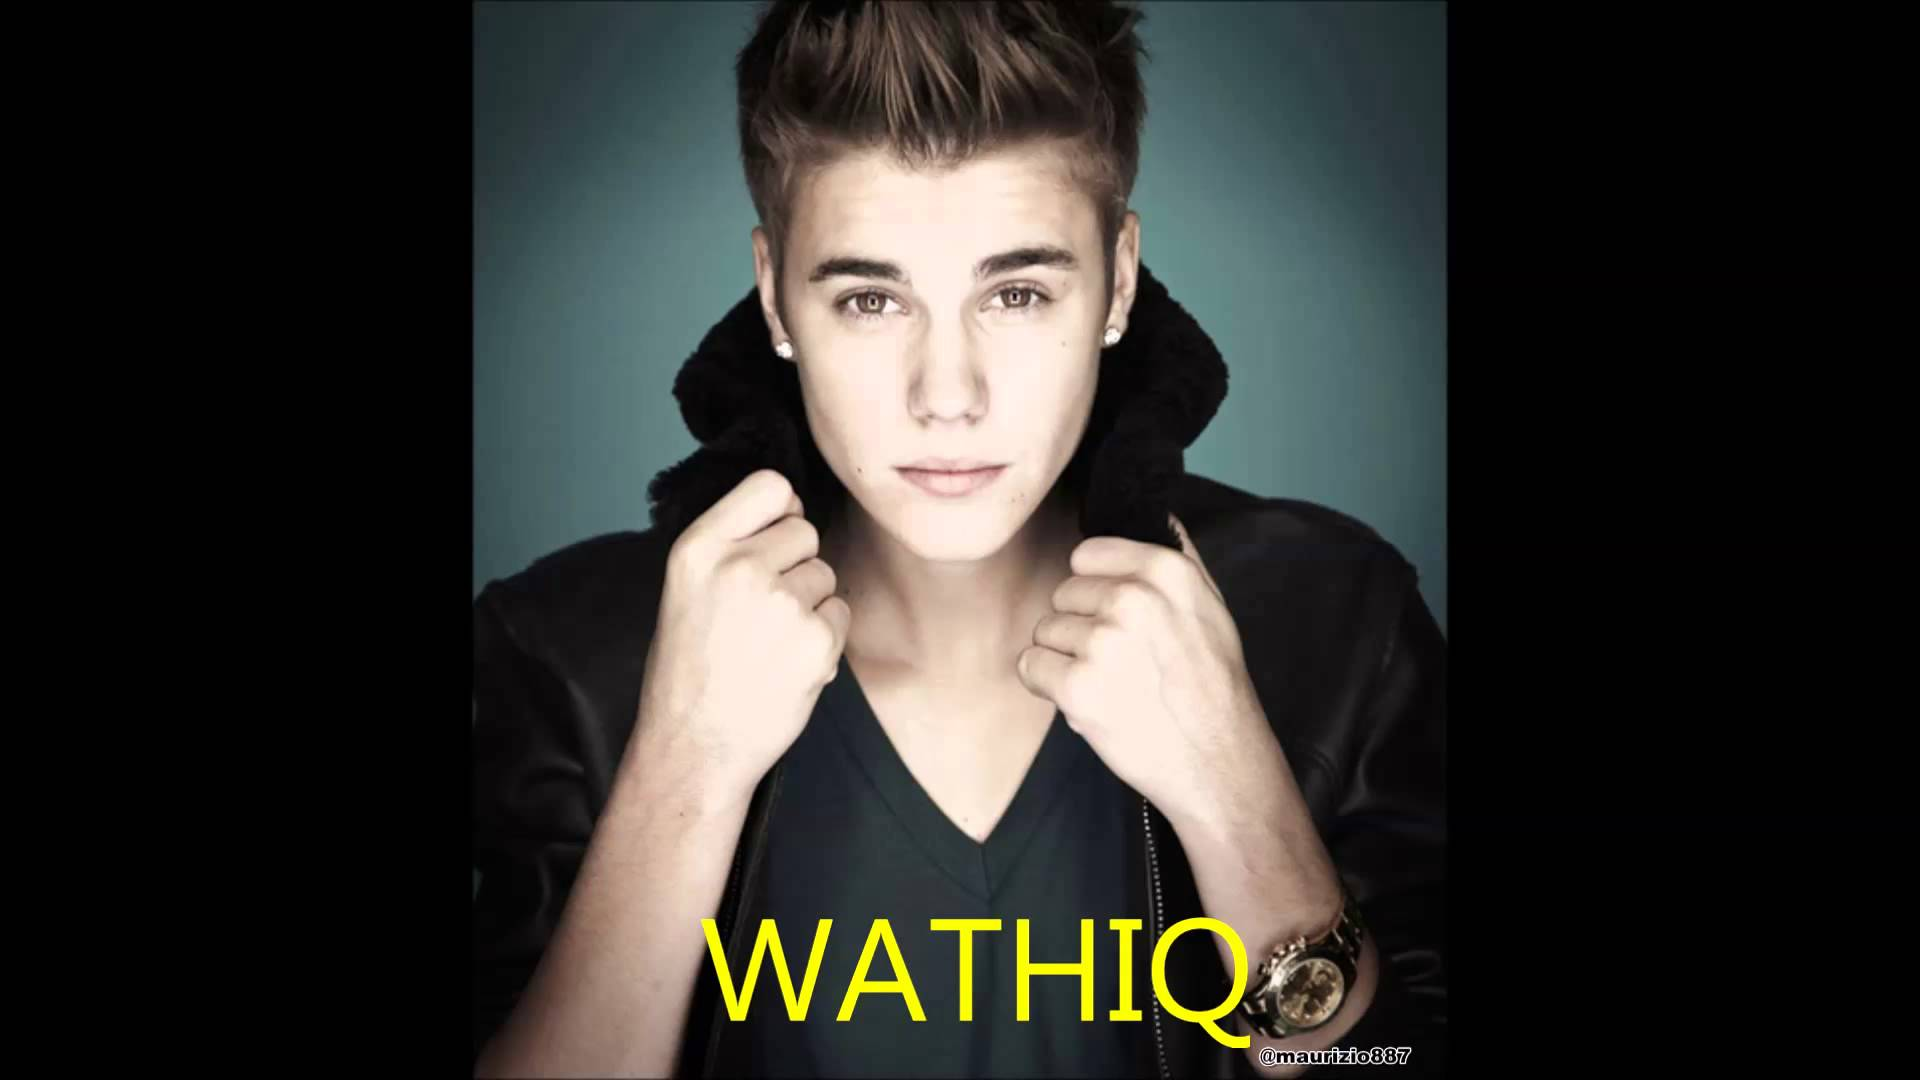 Justin bieber wall decals high resolution photographs